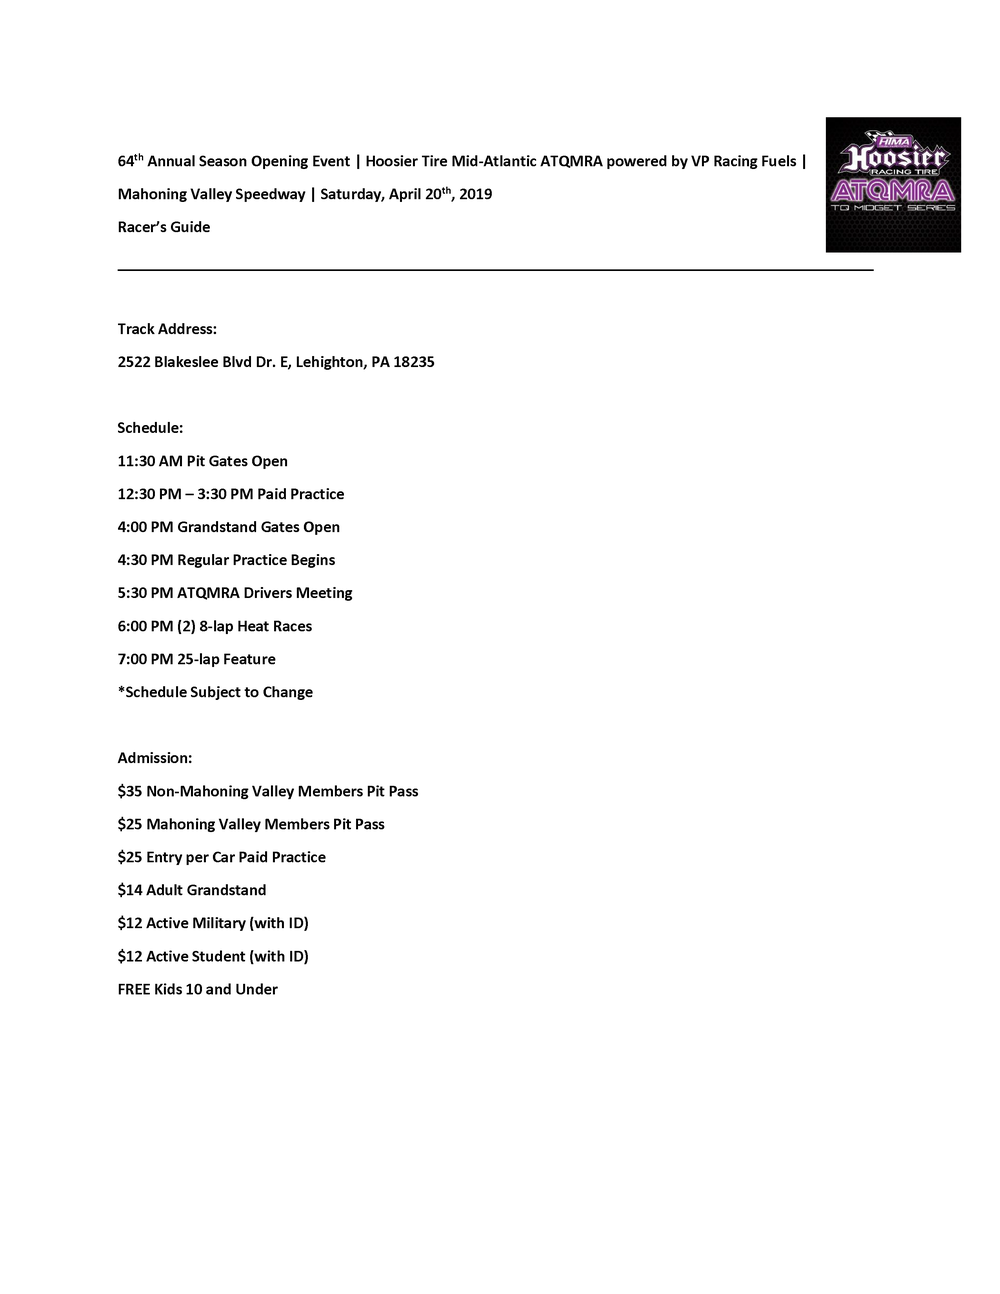 2019 Mahoning 1 Racers Guide .png